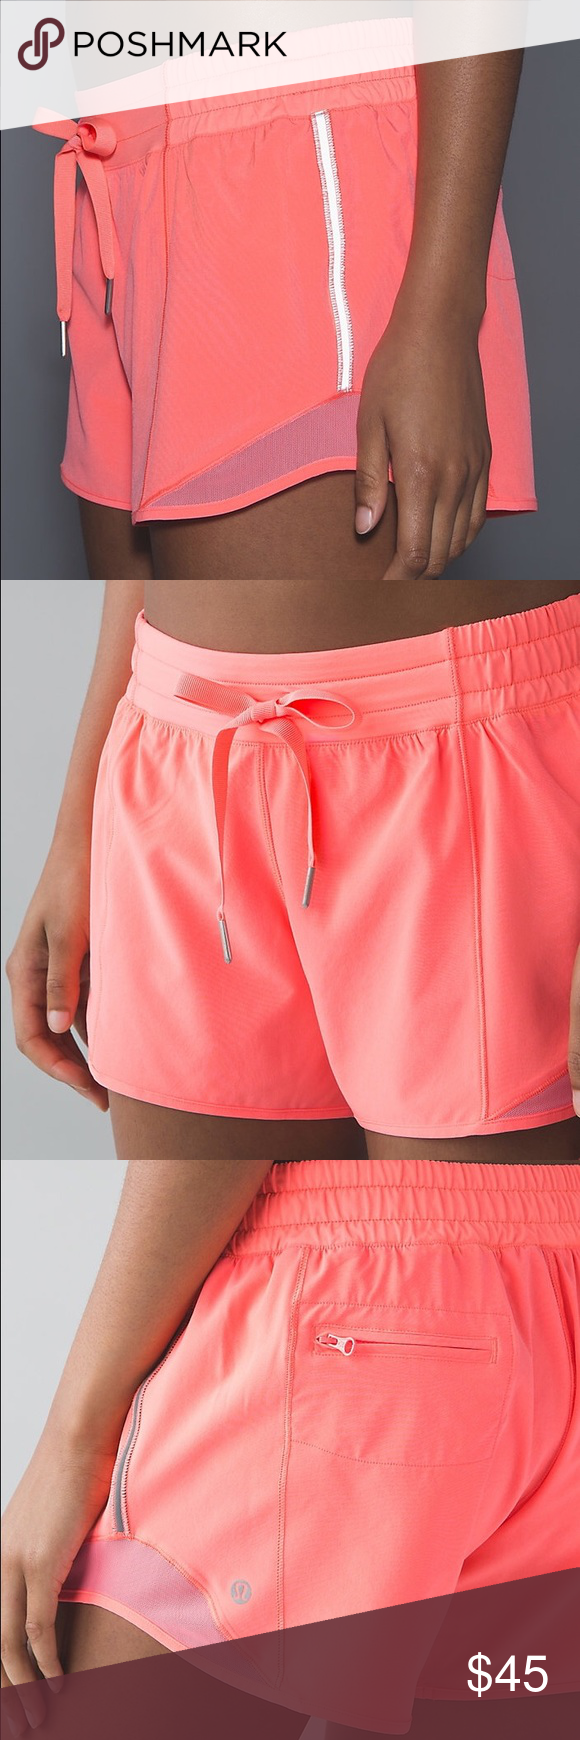 """✨🆕✨{lululemon} Hotty Hot Short* Long Color: grapefruit. Brand new with tags, never been worn. 4-way stretch, 4"""" inseam. Price is firm.   ❌ NO TRADES - SELLING ON POSH ONLY ❌ ❌ NO LOWBALLING ❌  ✅ Bundle Discounts ✅ Ship Next Day of Purchase  💯 % AUTHENTIC lululemon athletica Shorts"""